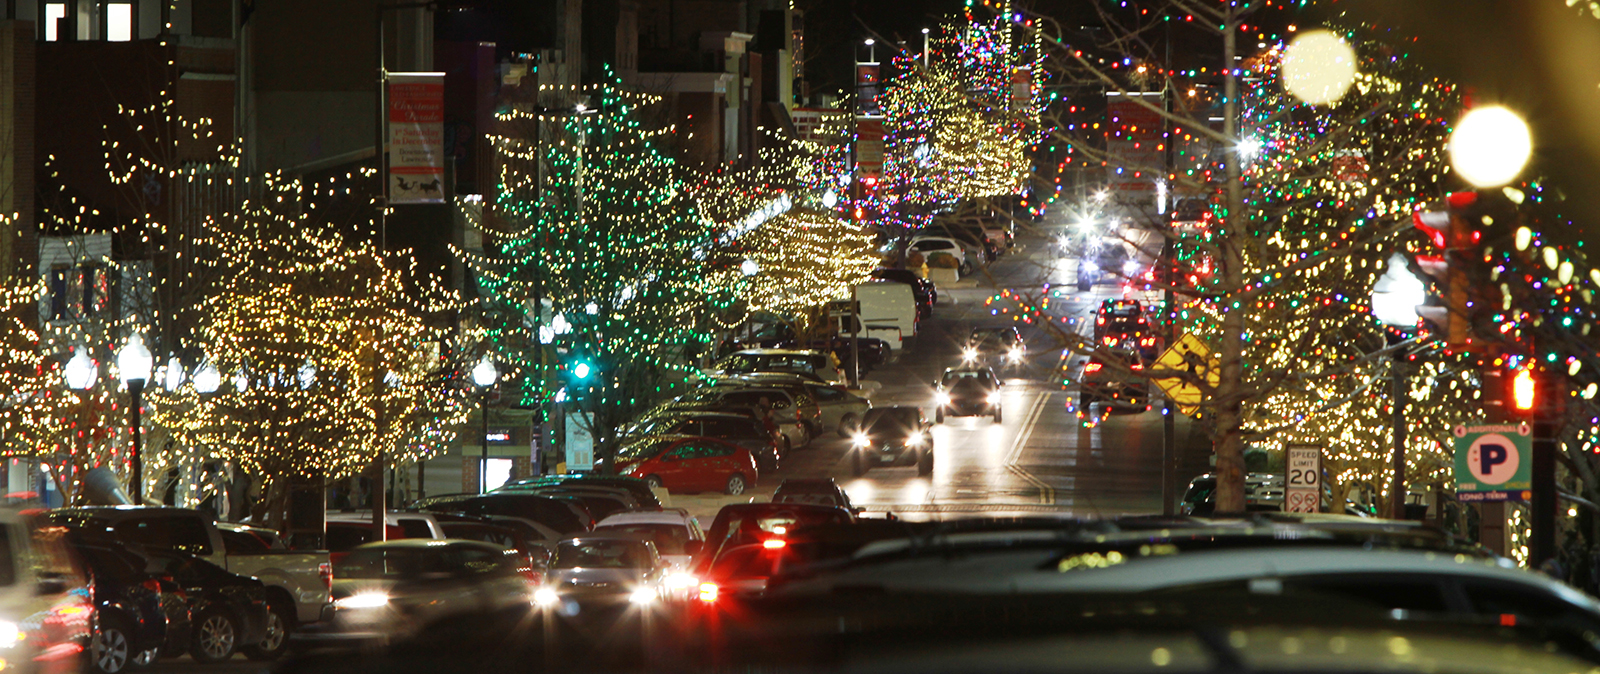 County uses GIS software to crowdsource holiday lights map | NACo